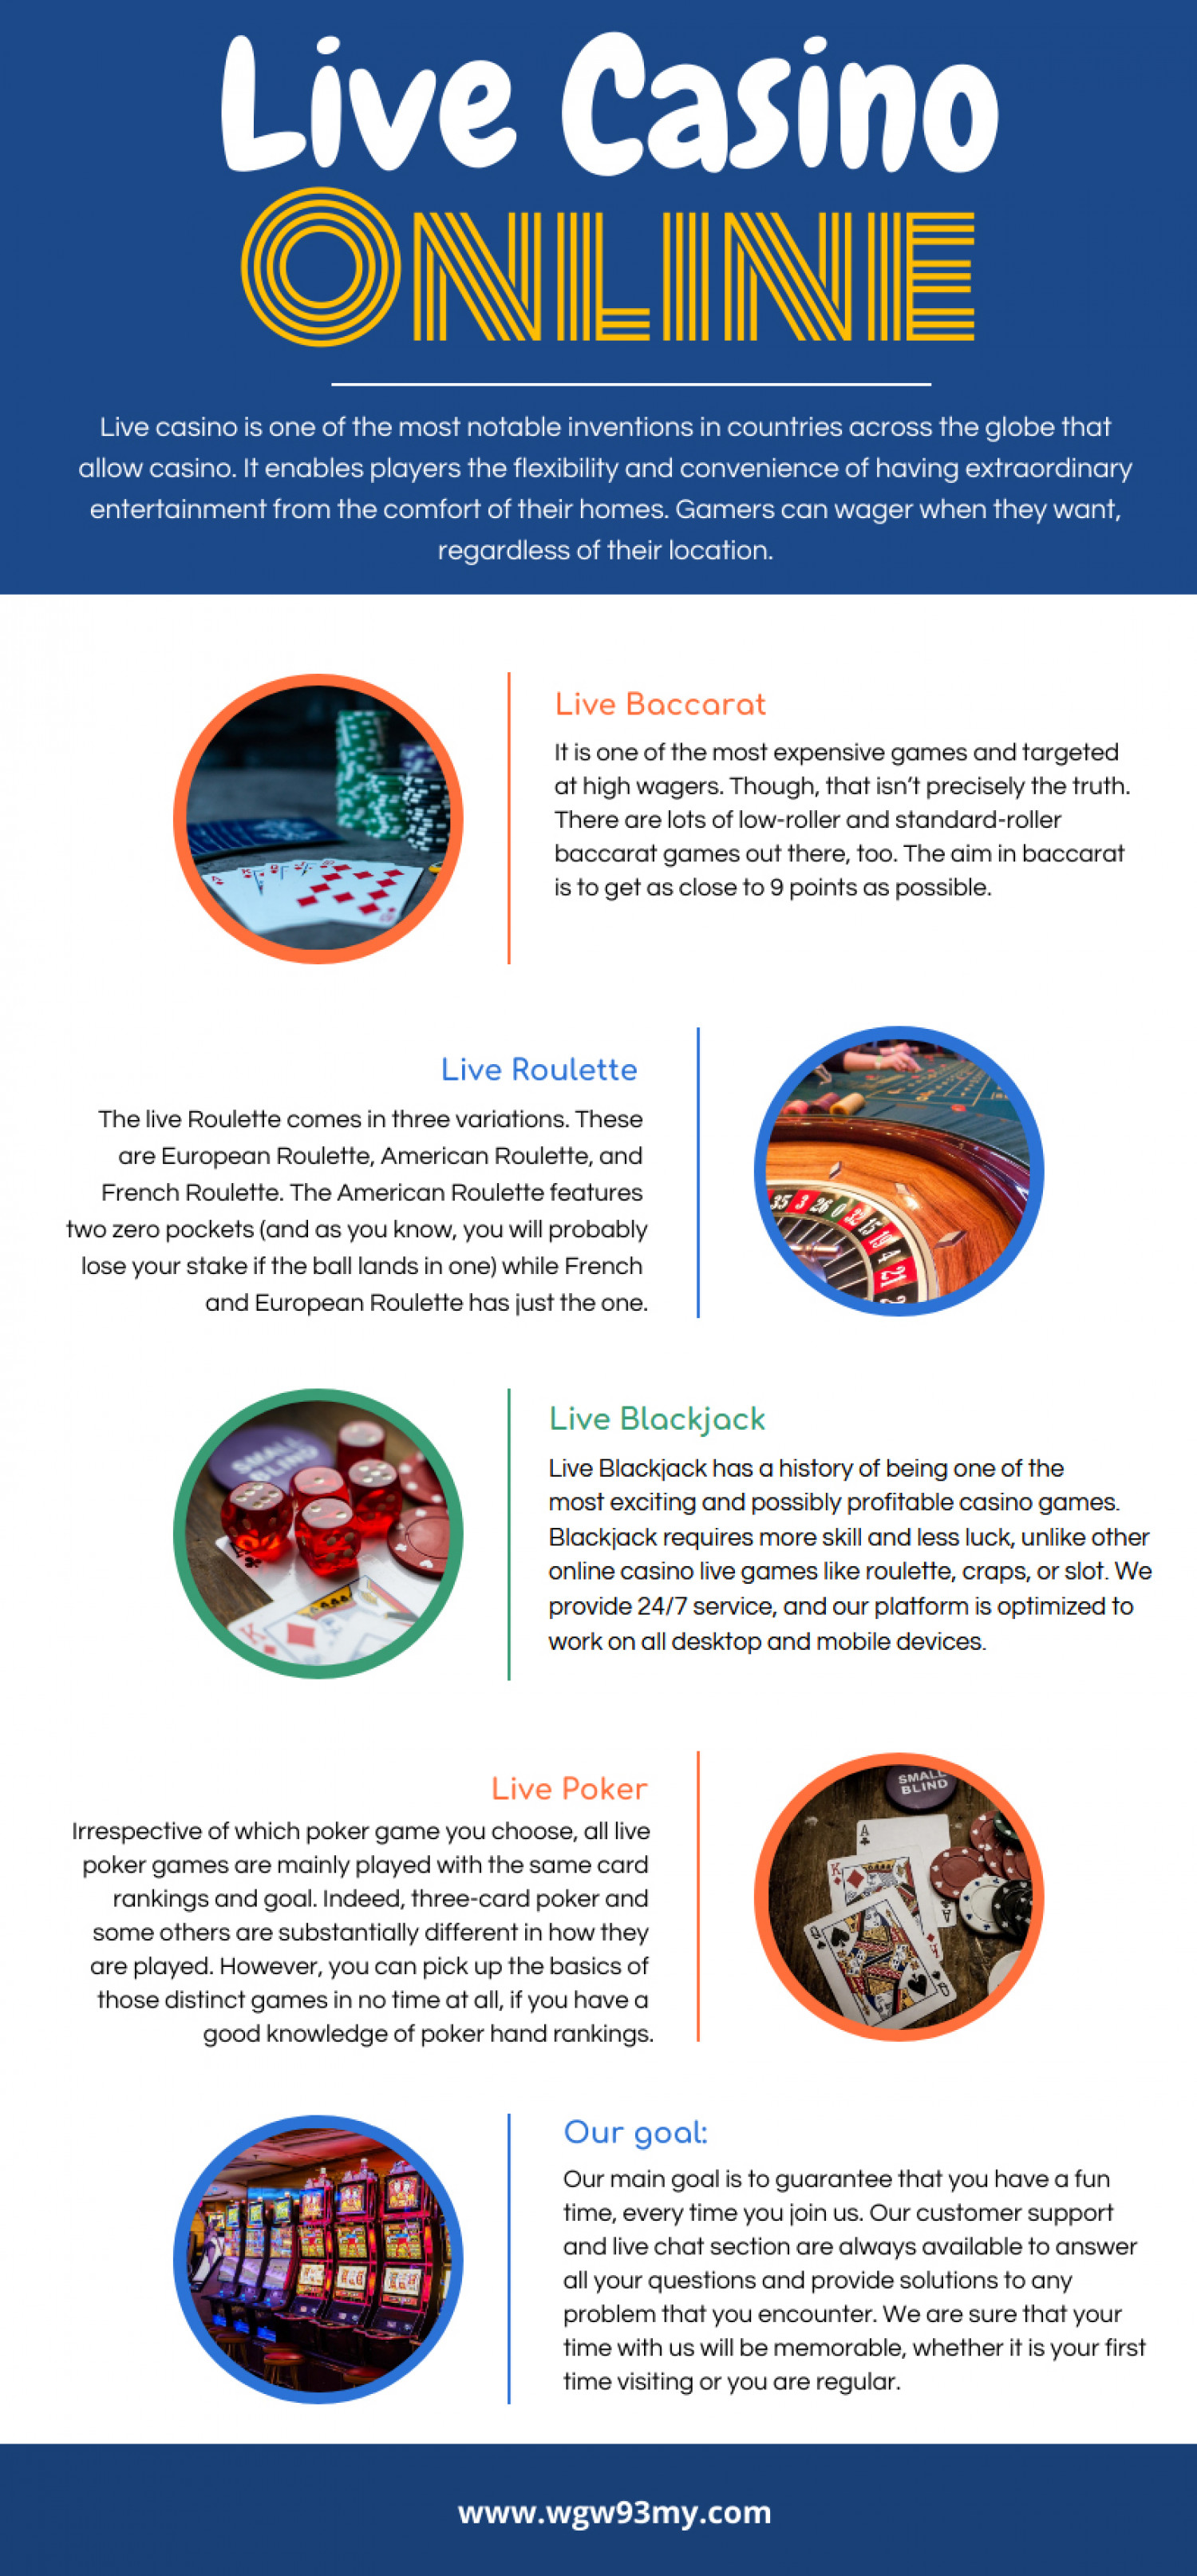 Live Casino Online Malaysia Infographic